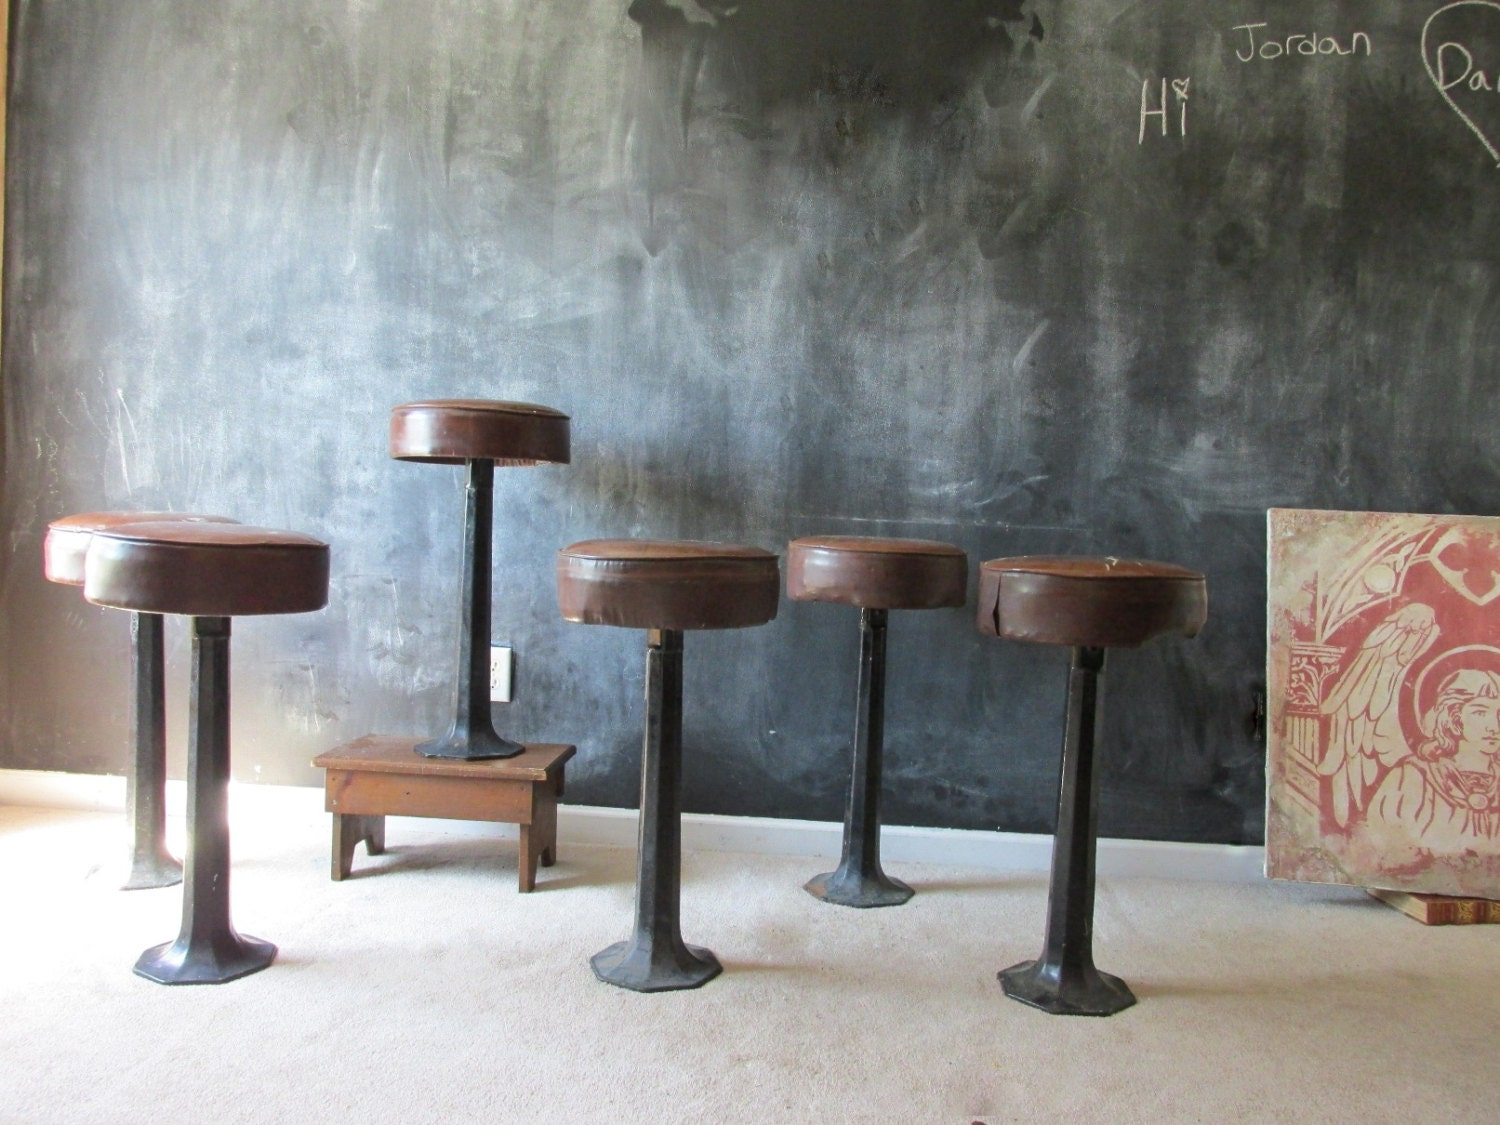 Reserved for K Set of 6 Cast Iron Bar Stools by  : ilfullxfull452858542dbwv from www.etsy.com size 1500 x 1125 jpeg 308kB